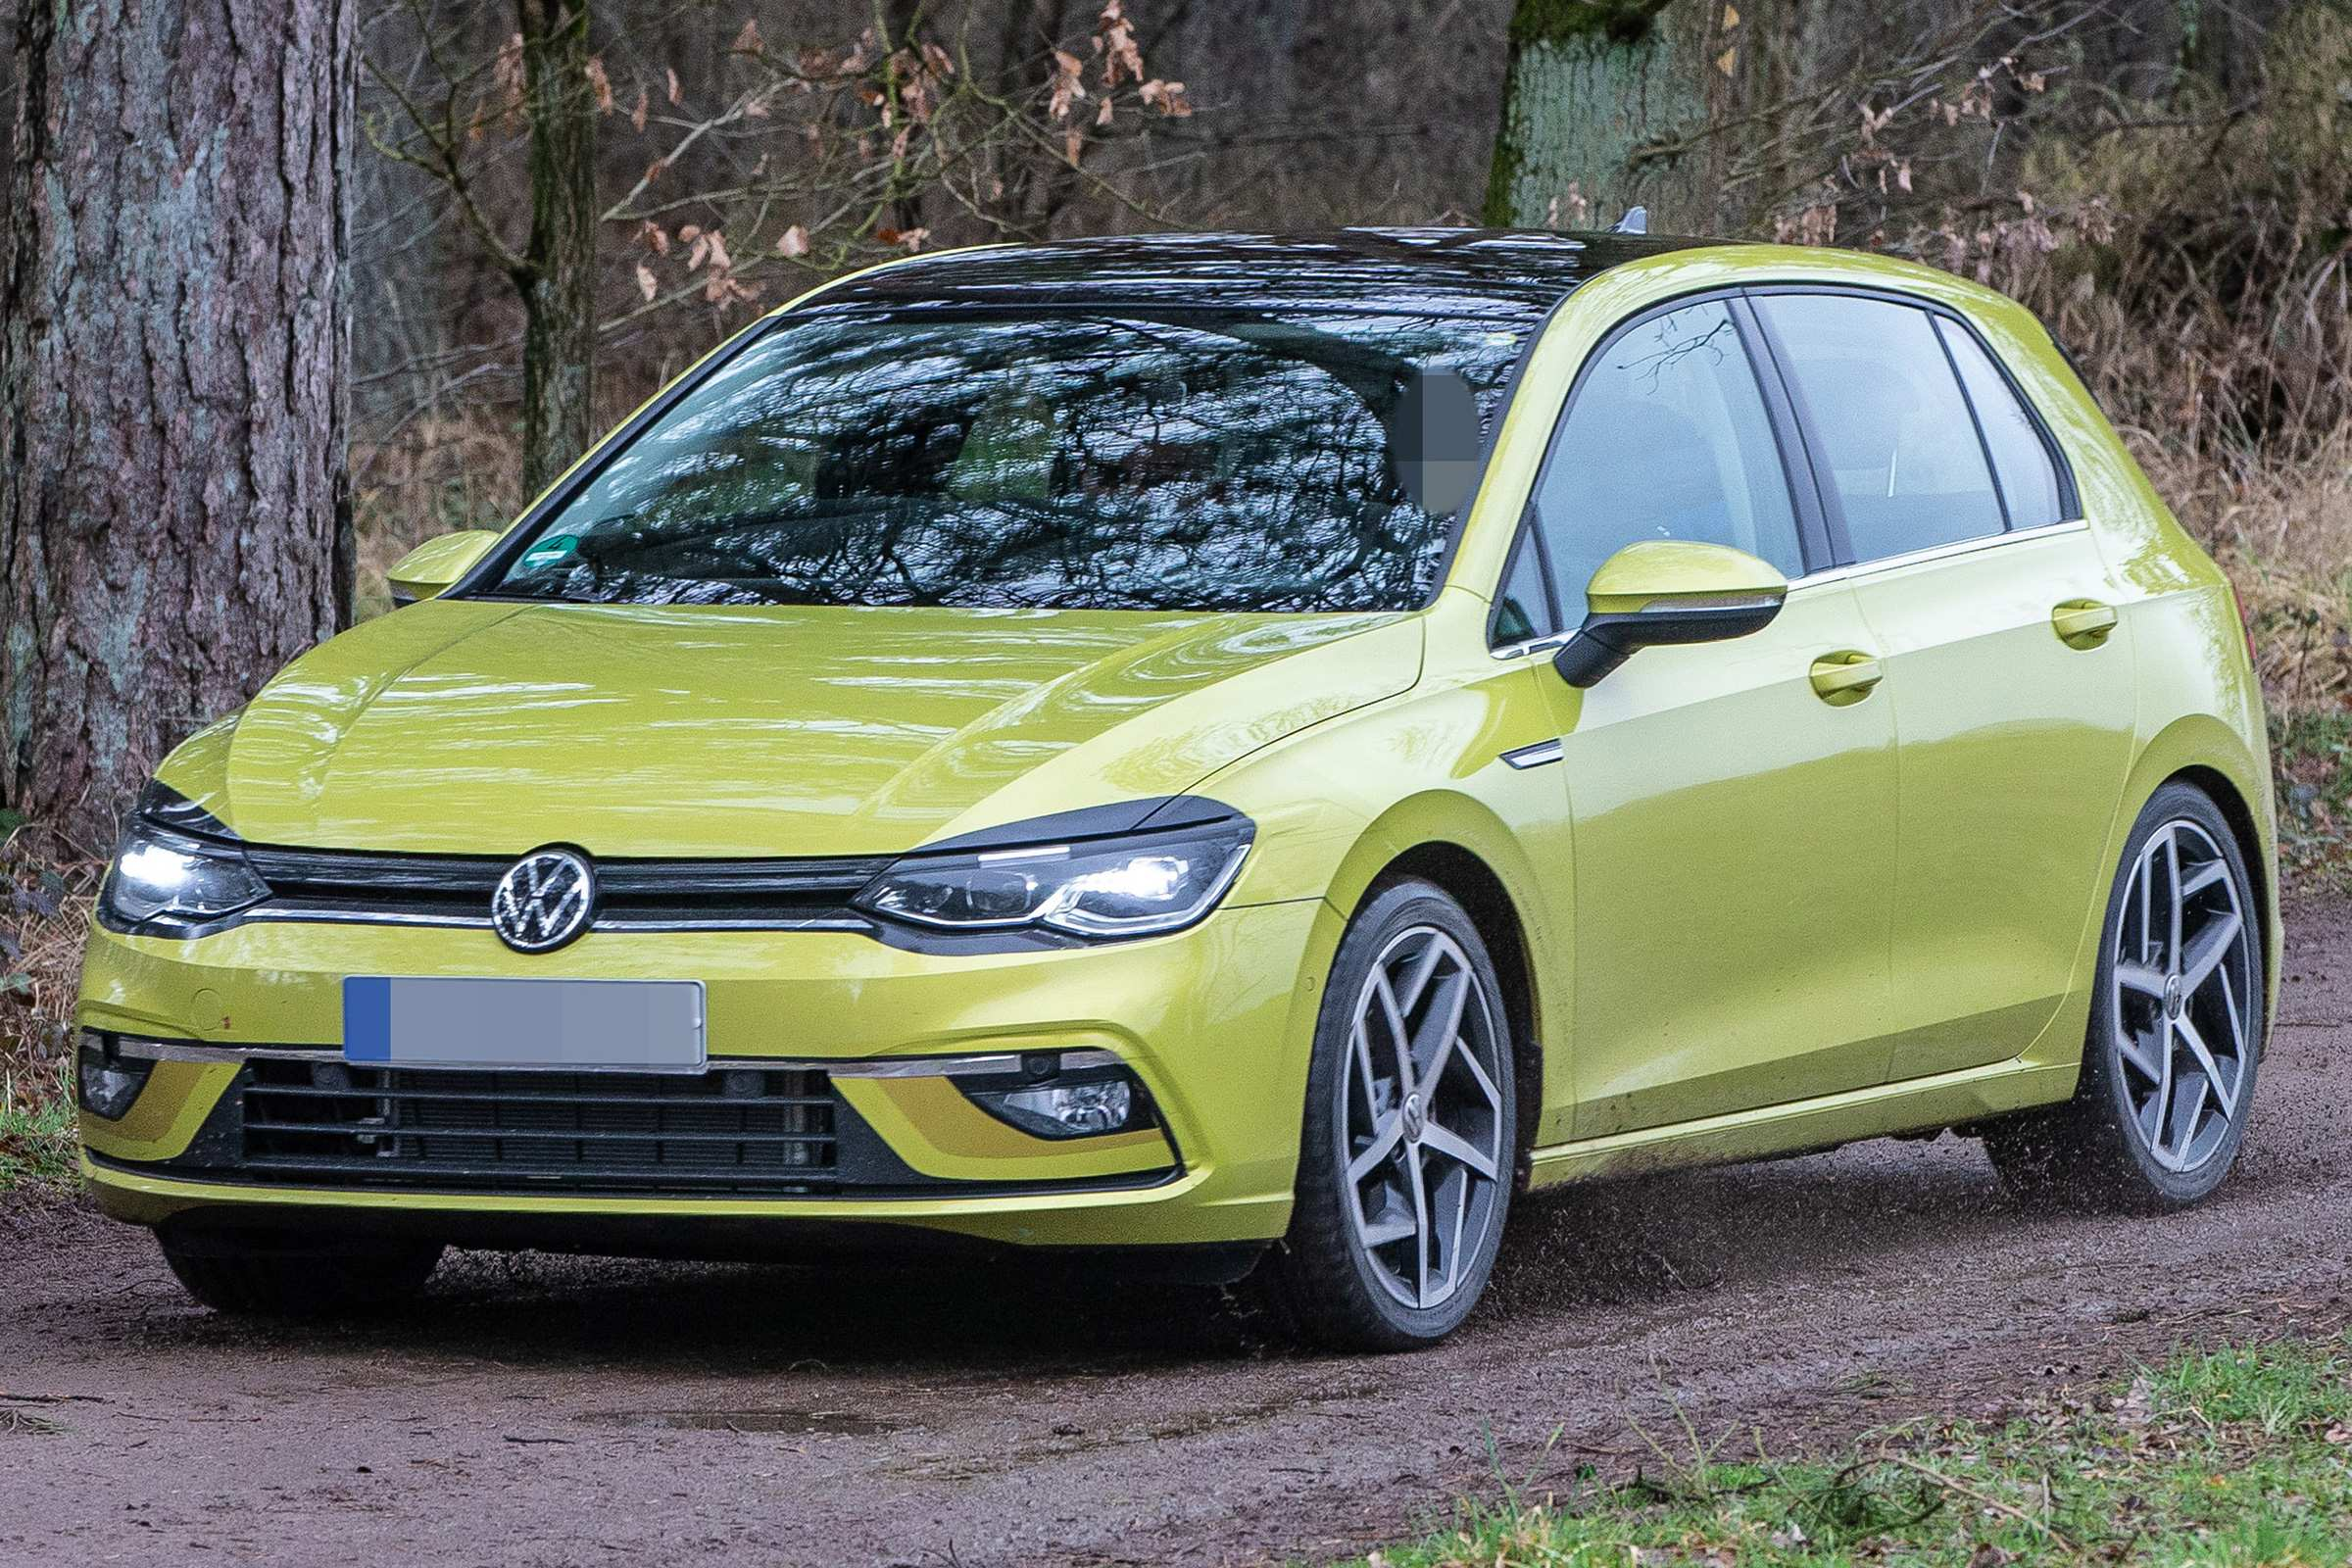 31 New Golf Vw 2019 Images with Golf Vw 2019